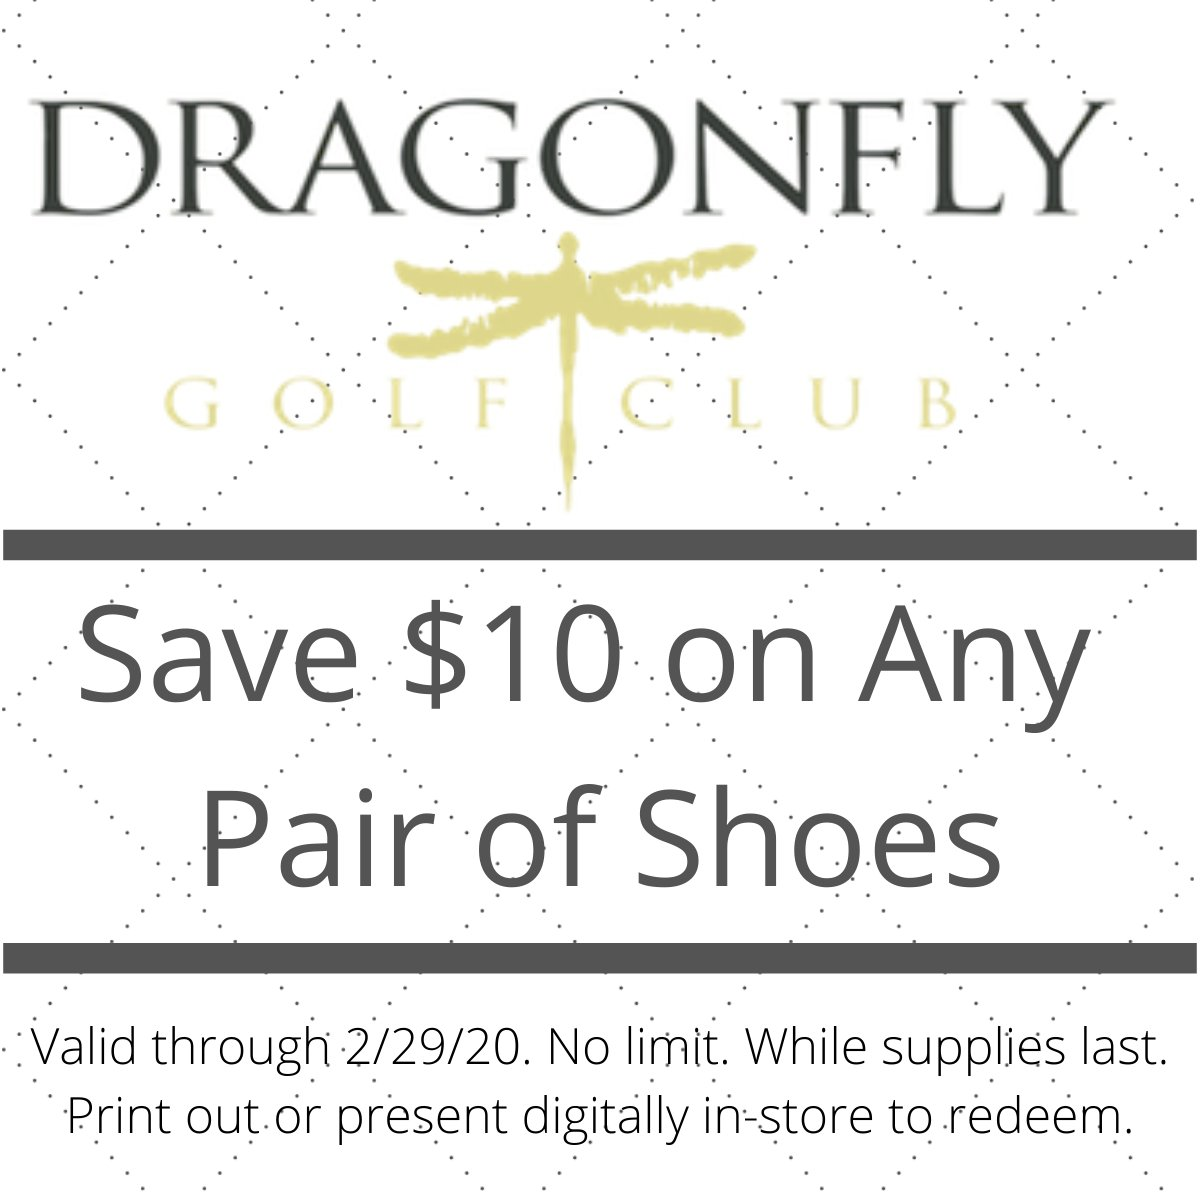 Thinking about changing up your style while on the green? Get $10 off any pair of shoes now until the end of the month in-store while supplies last!    #californiagolf #salepic.twitter.com/E3lgWV4a14